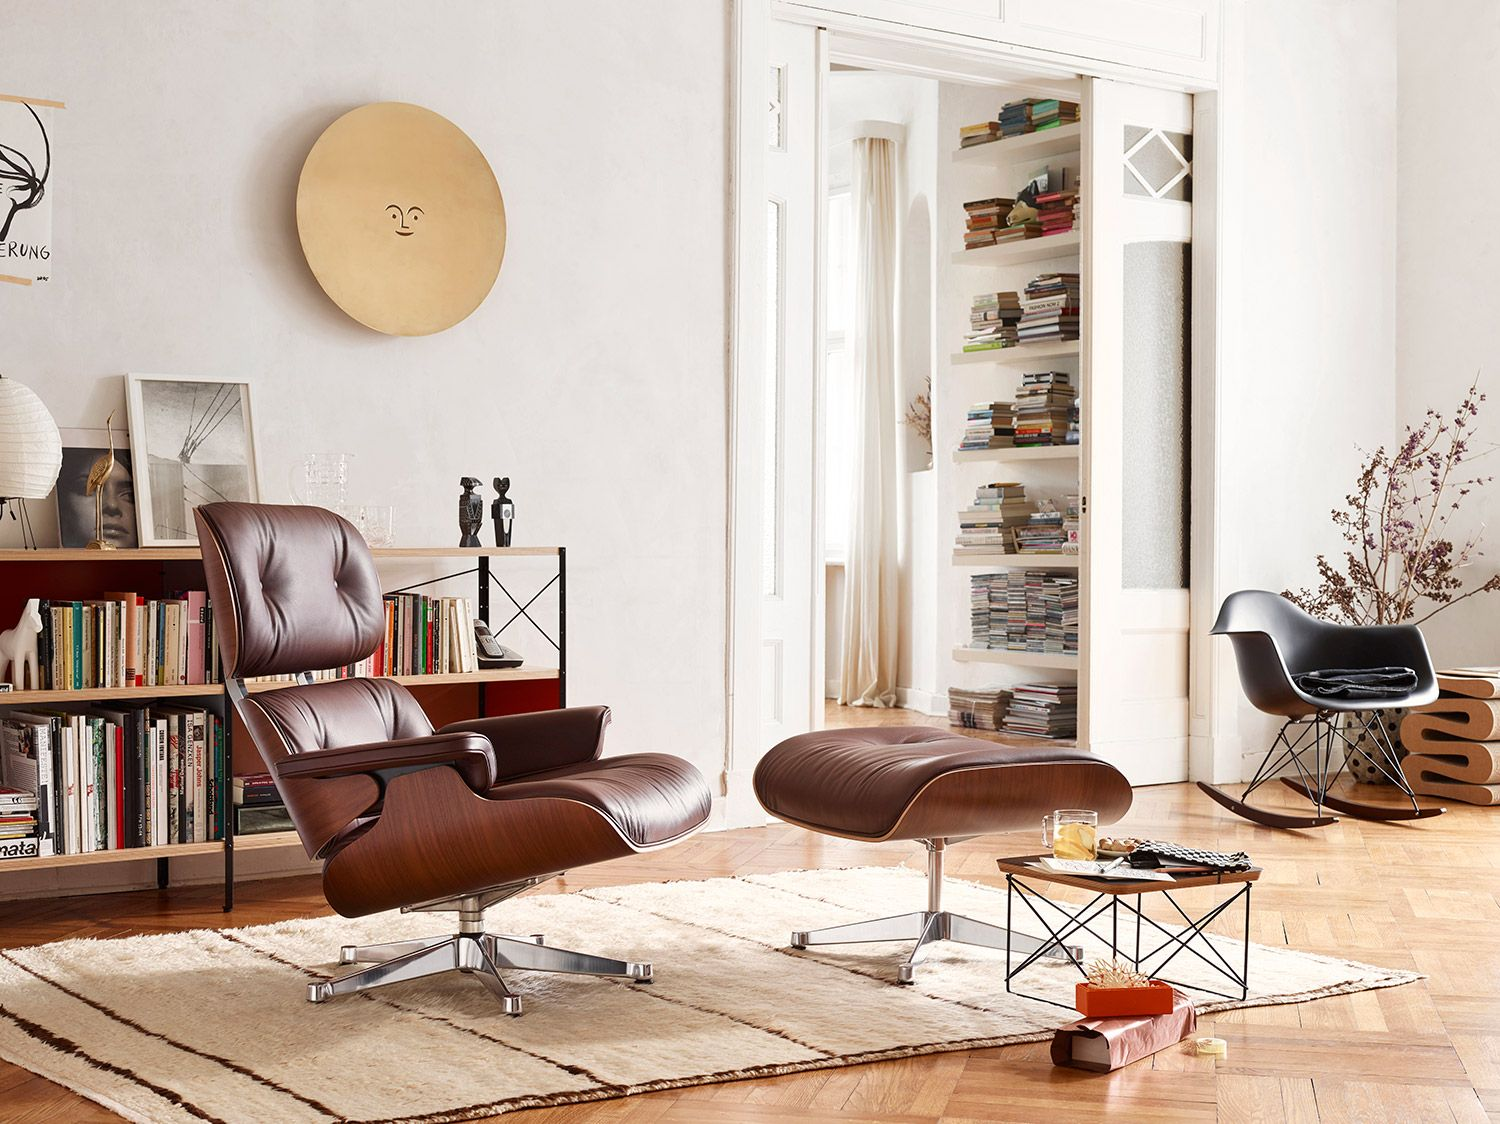 Vitra lounge chair amp ottoman white version von charles amp ray eames -  Eames Lounge Chair Winter Edition Santos Palisander Shell With Brandy Leather